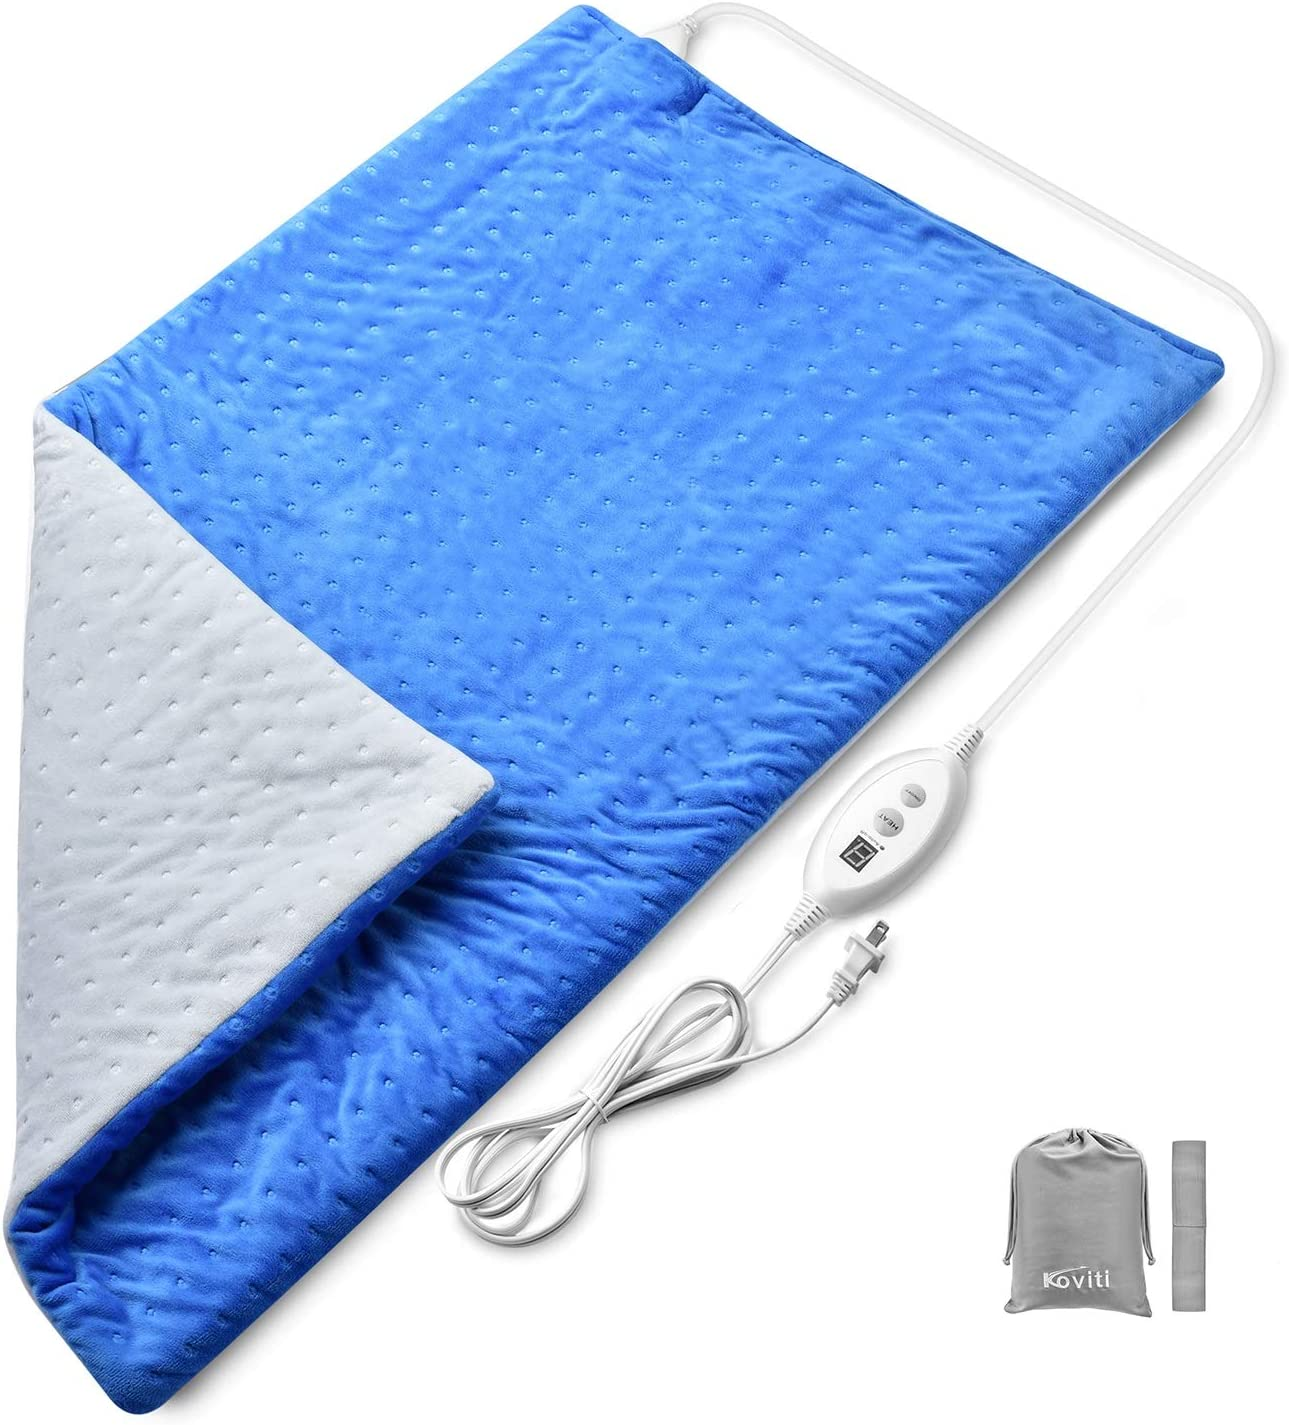 Heating Pads for Back Pain - Koviti Large Heating Pad[17''x33'']with 6 Heat Setting&2H Auto Shut Off for Fast Neck/Shoulder/Foot Pain Relief, Soft Moist Heating Pad with Elastic Band&Storage Bag(Blue)